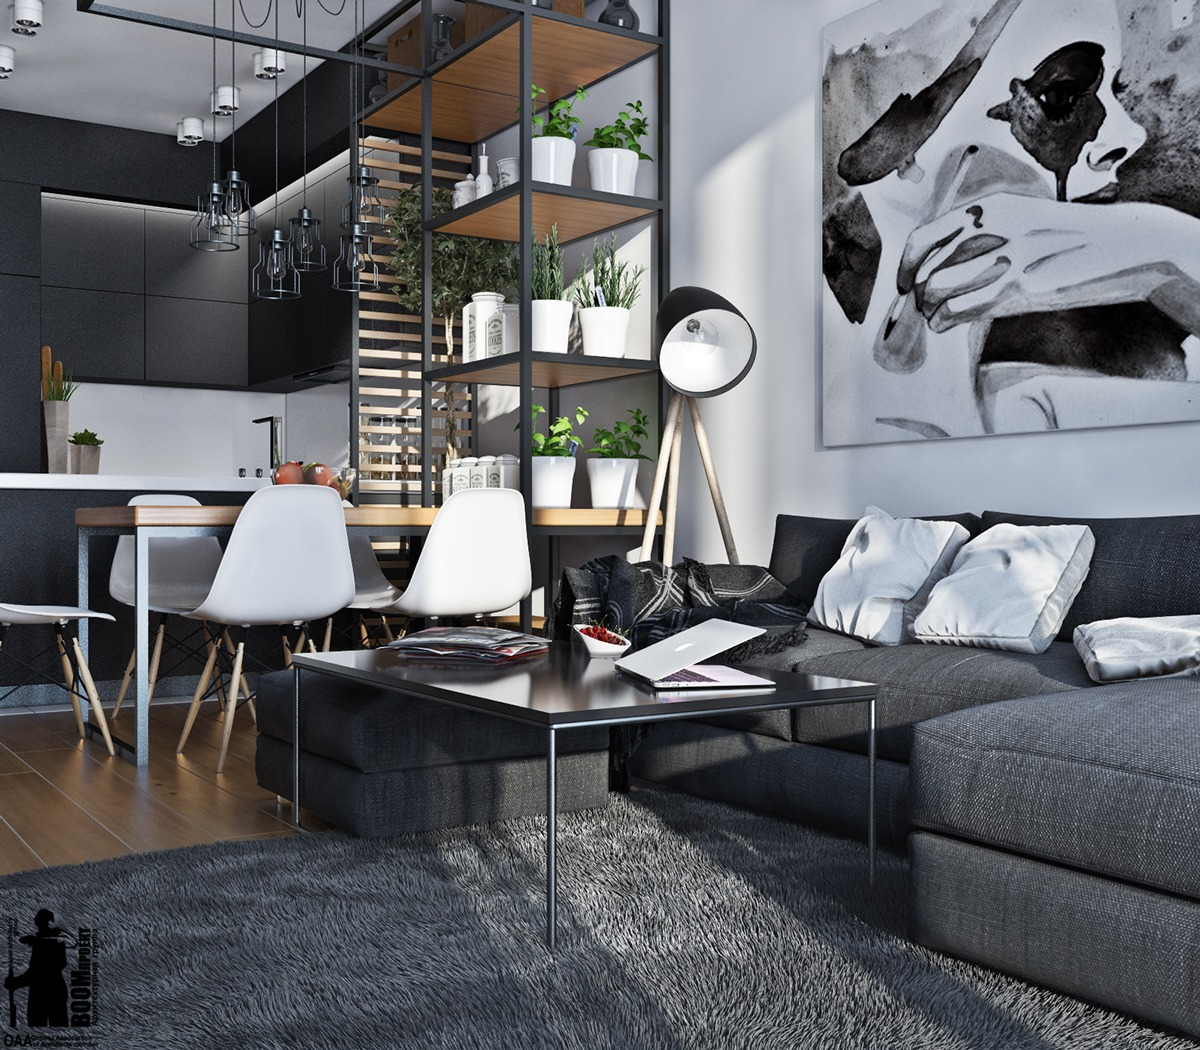 Artistic apartments with monochromatic color schemes for Interior house designs black and white